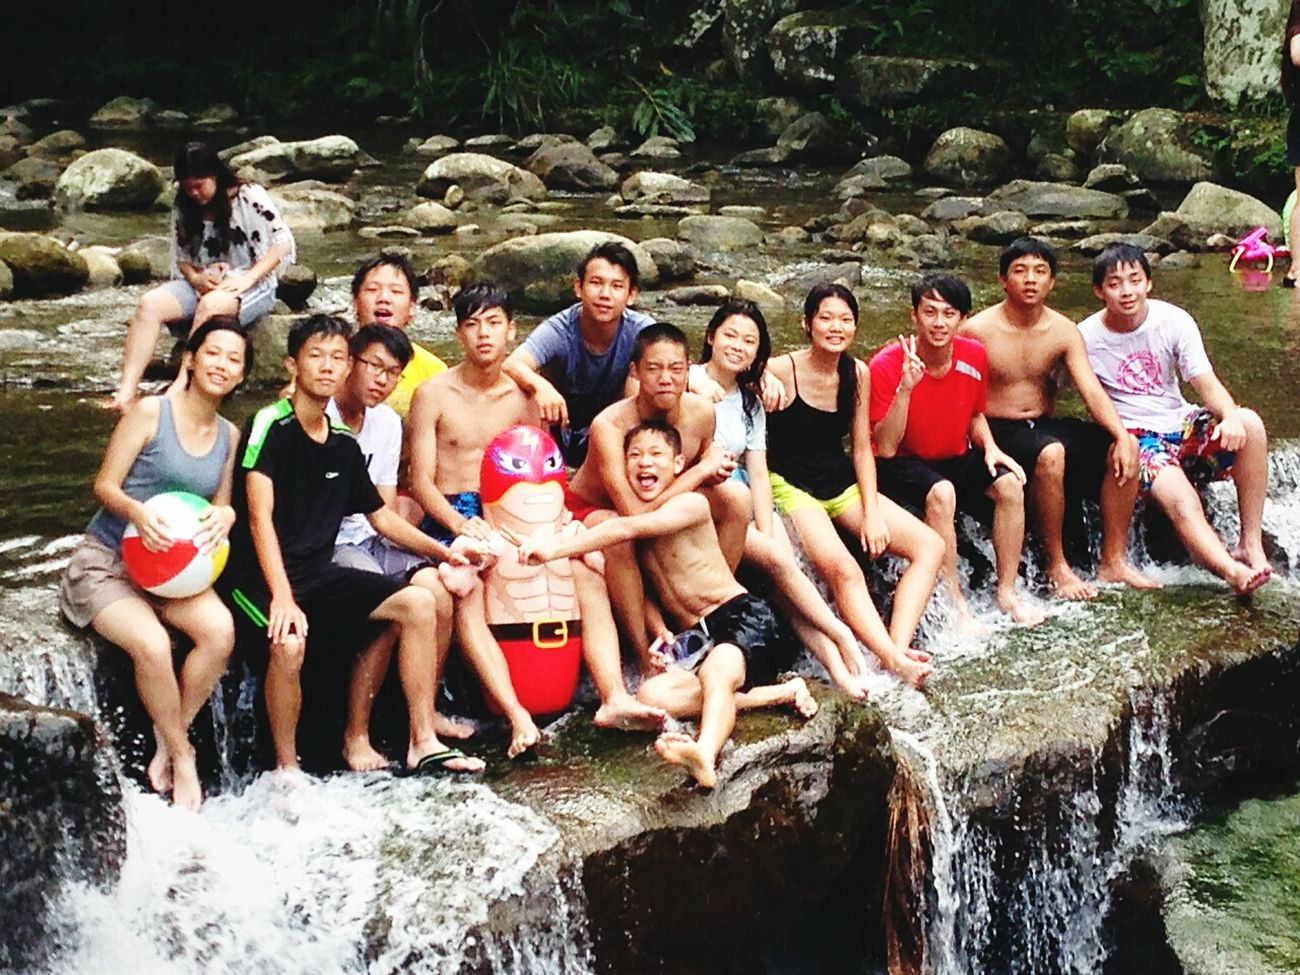 Grilling & swimming with Volleyball Team Drinking Beer Tipsy Barbecue Riverside Taiwan Xindian Awesome Waterfall